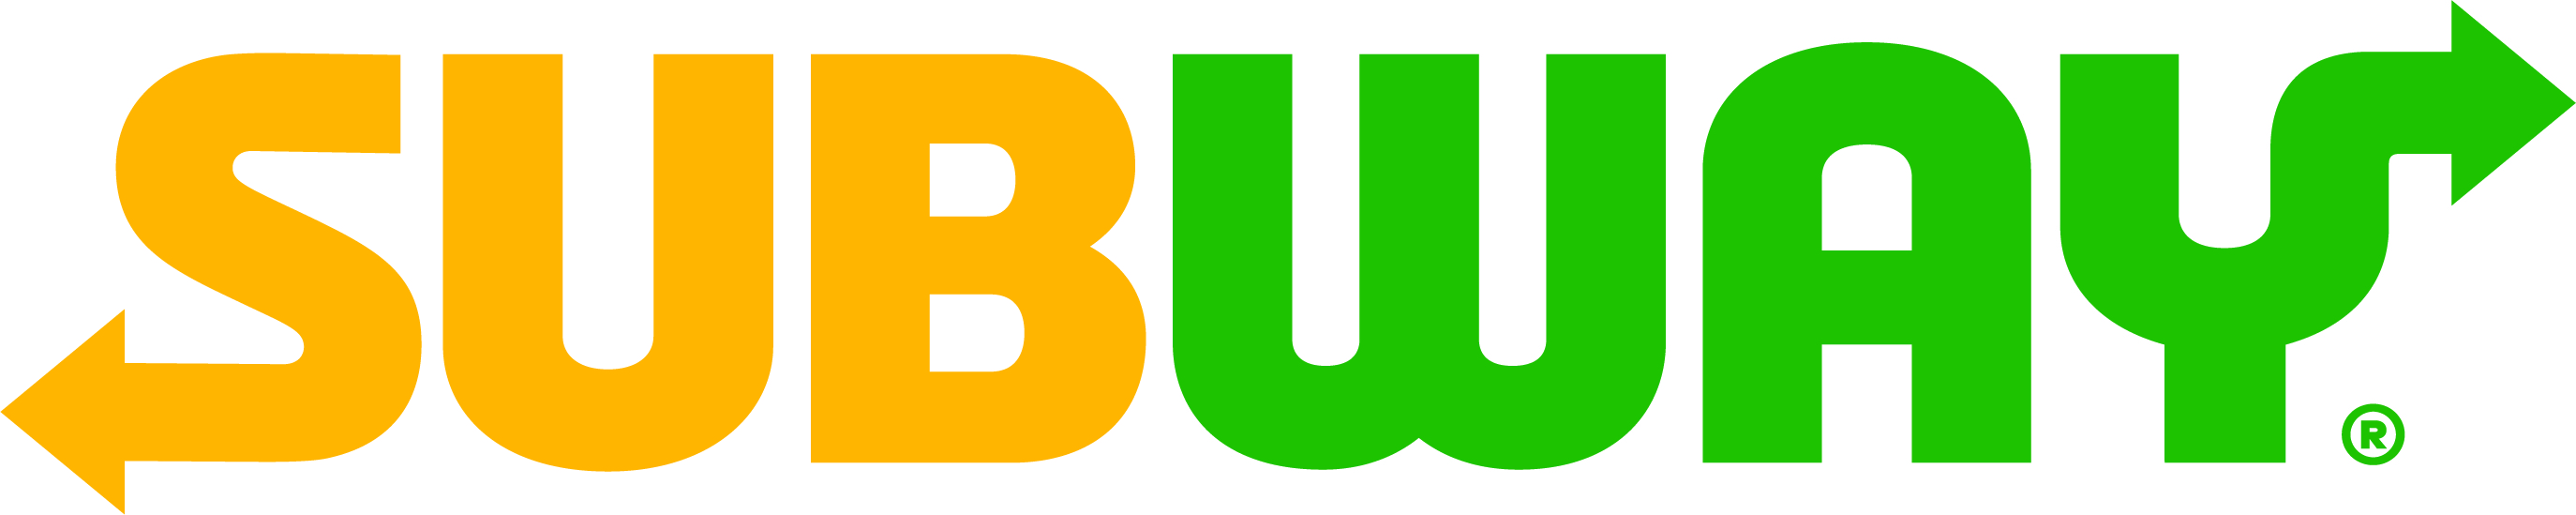 Subway BOGO  Logo